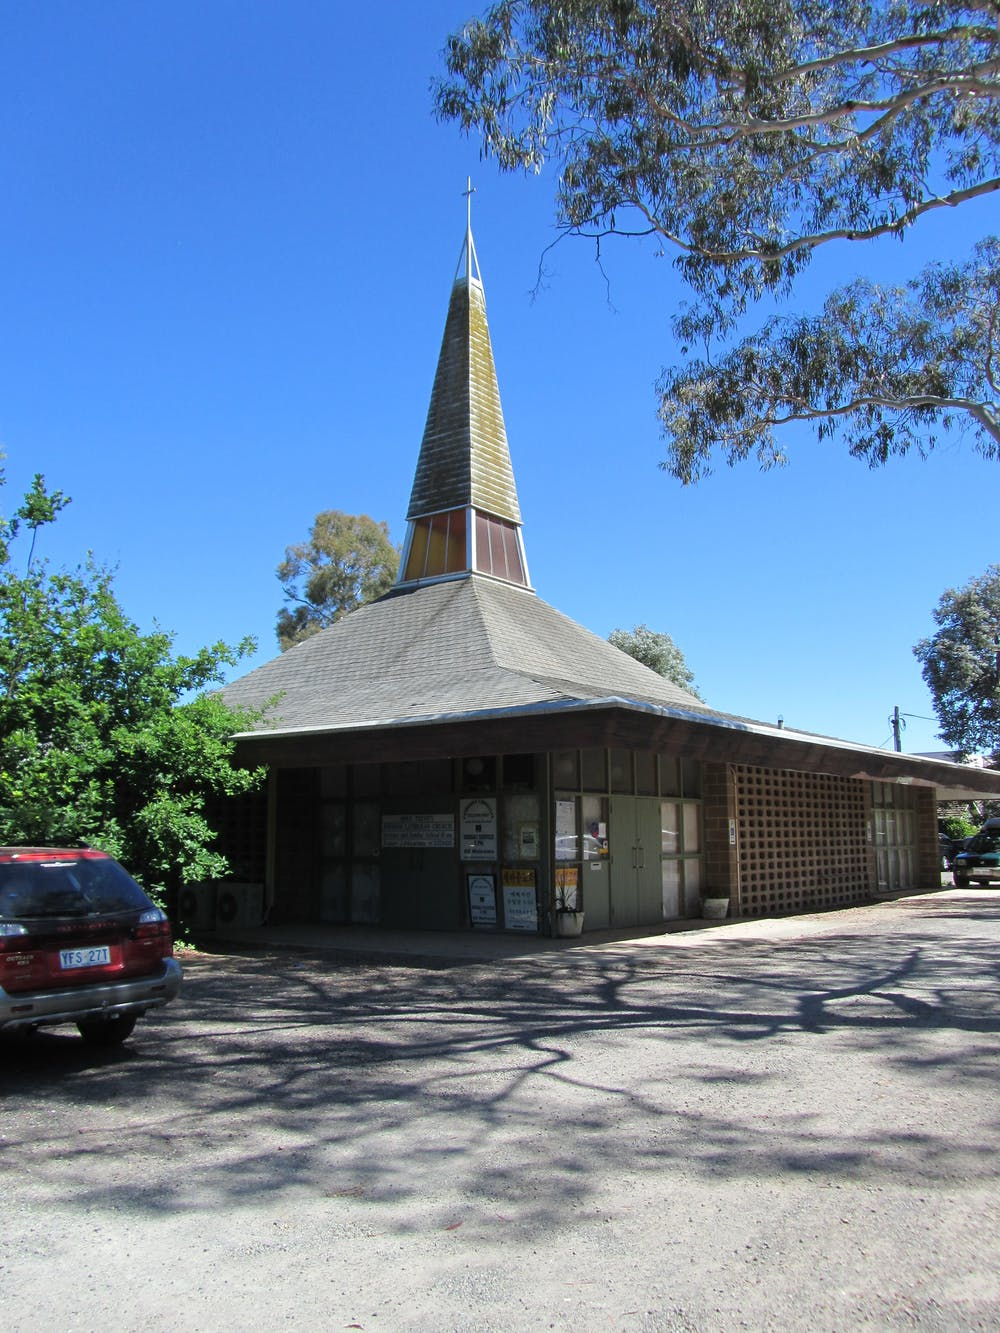 Australia's modern church buildings are disappearing